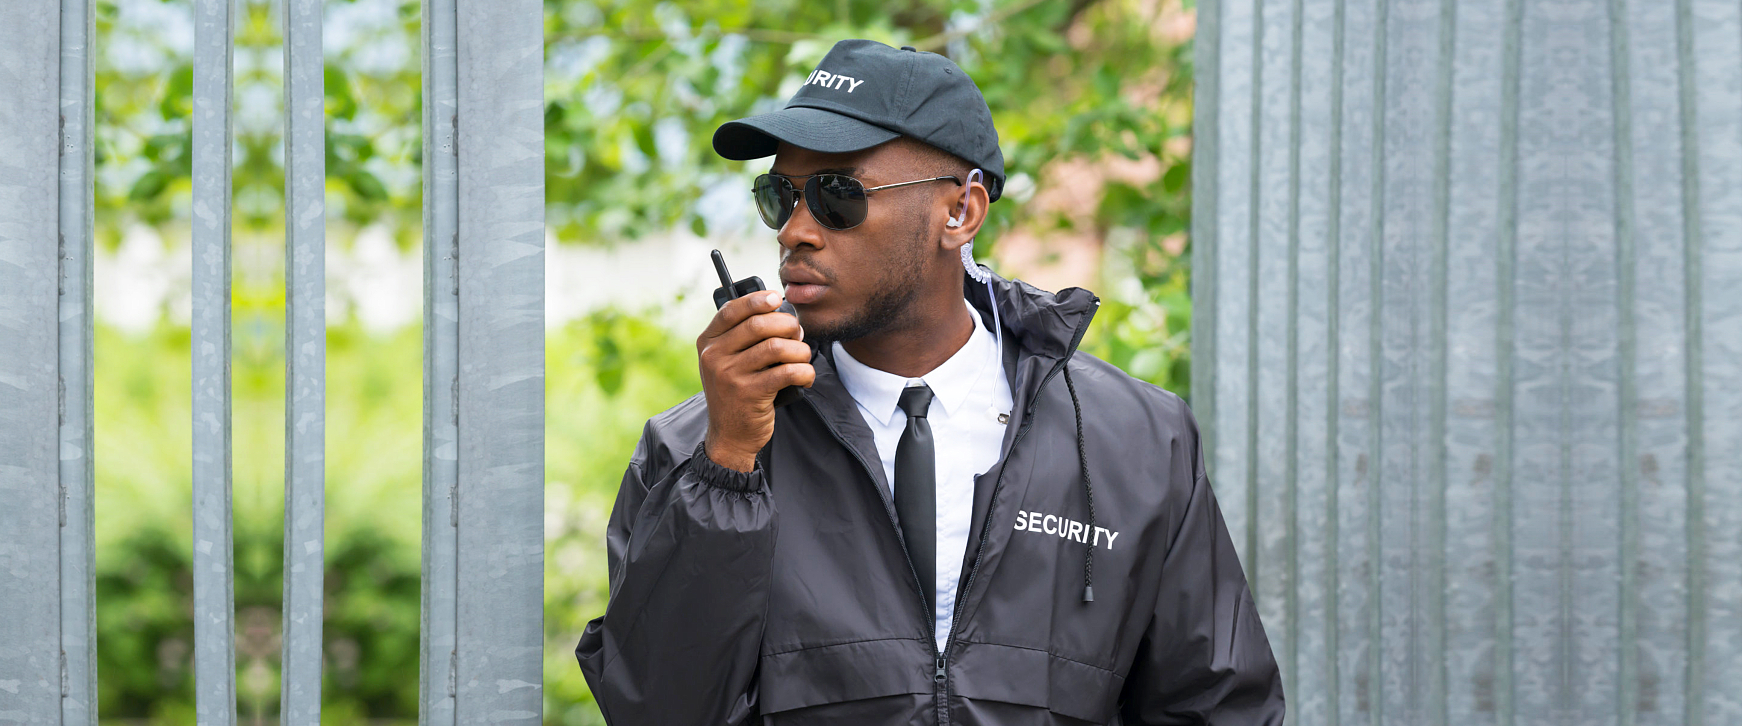 security man holding a walkie talkie